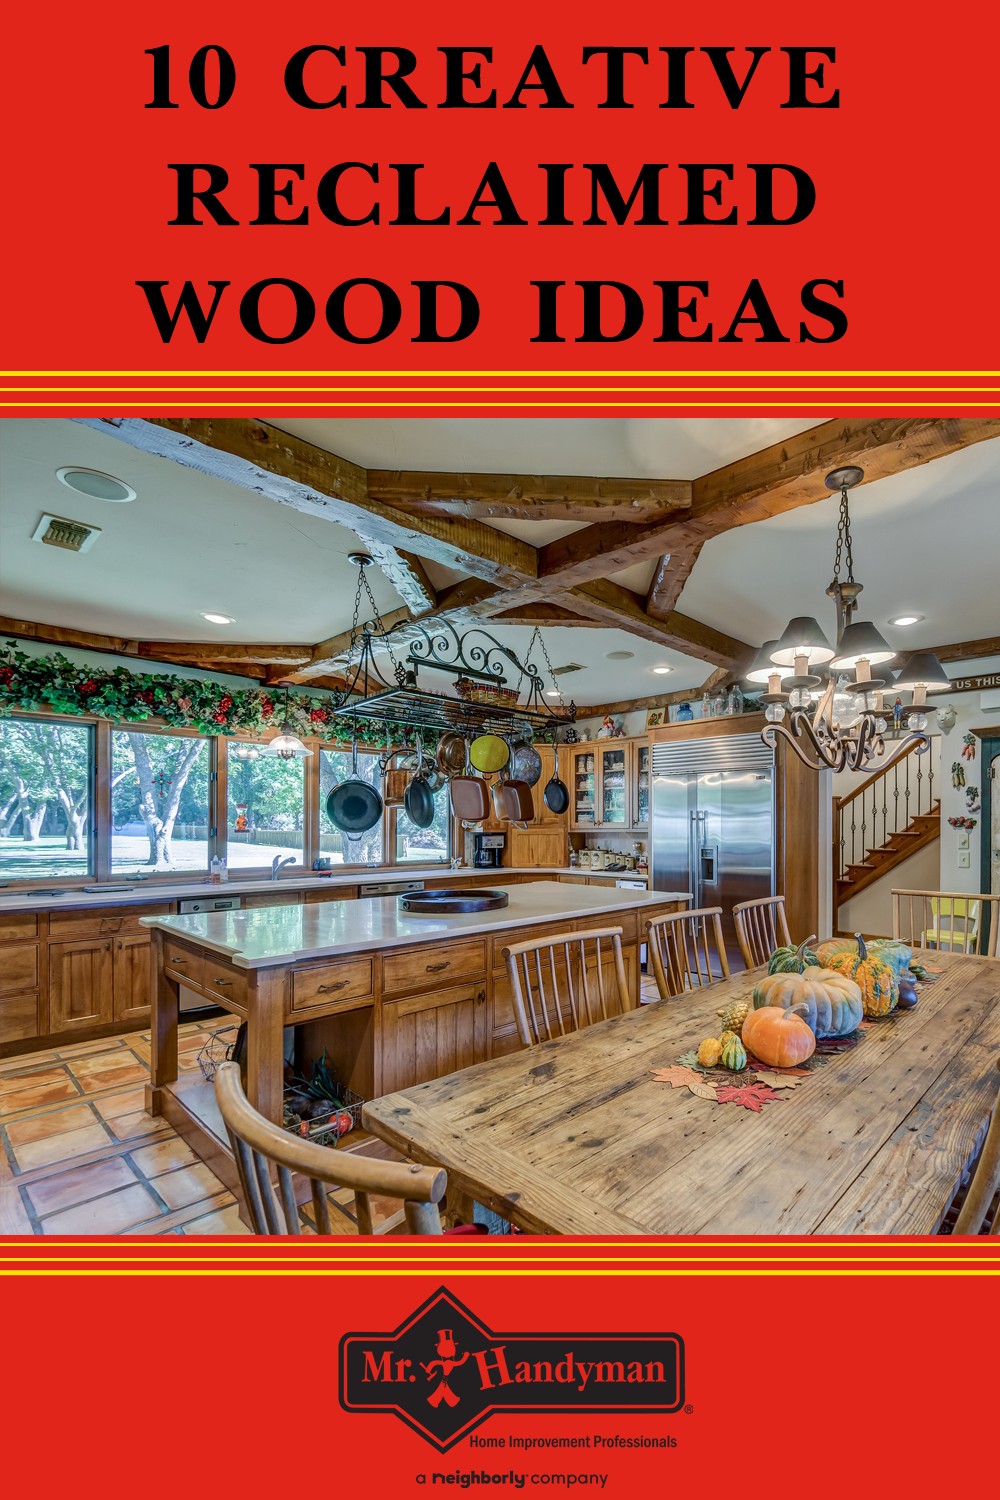 By using reclaimed wood, material salvaged from older building and structures, including homes, factories, and warehouses, you choose a green material solution that adds warmth, value and a bit of history to your home! 👍 #MrHandyman #Wood #WoodIdeas #WoodFurniture #WoodProjects #HomeImprovement #HomeDecorations #HomeIdeas #Home